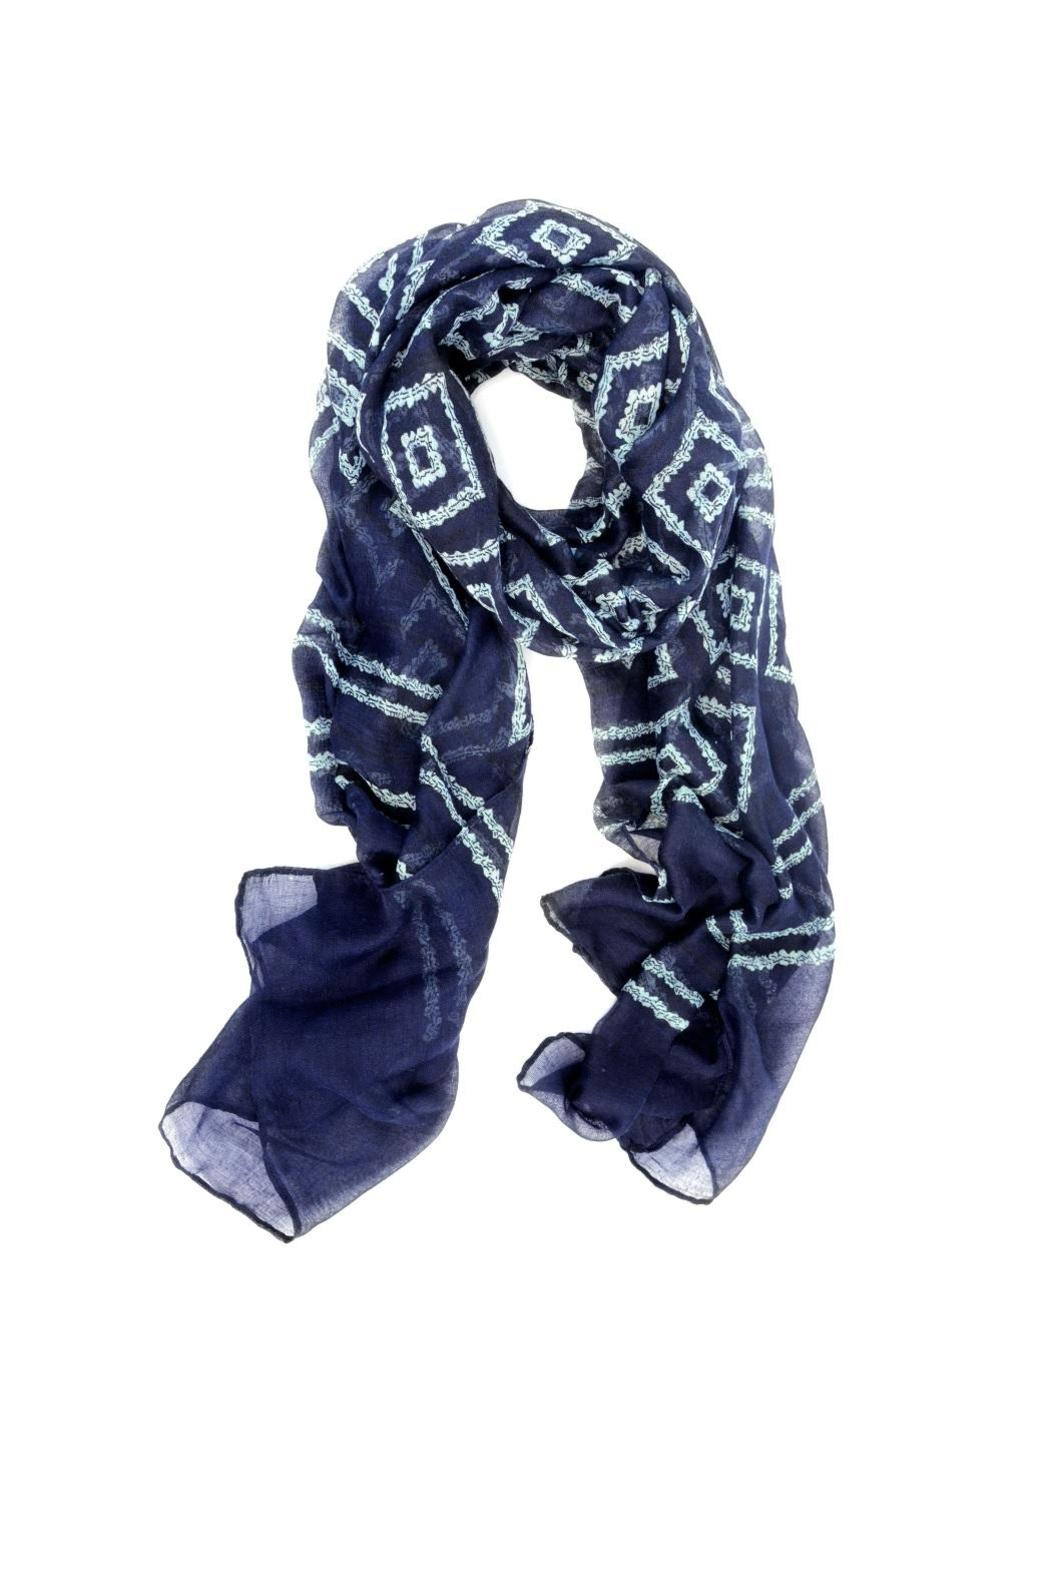 Joy Susan Accessories Navy Diamonds Scarf - Front Cropped Image